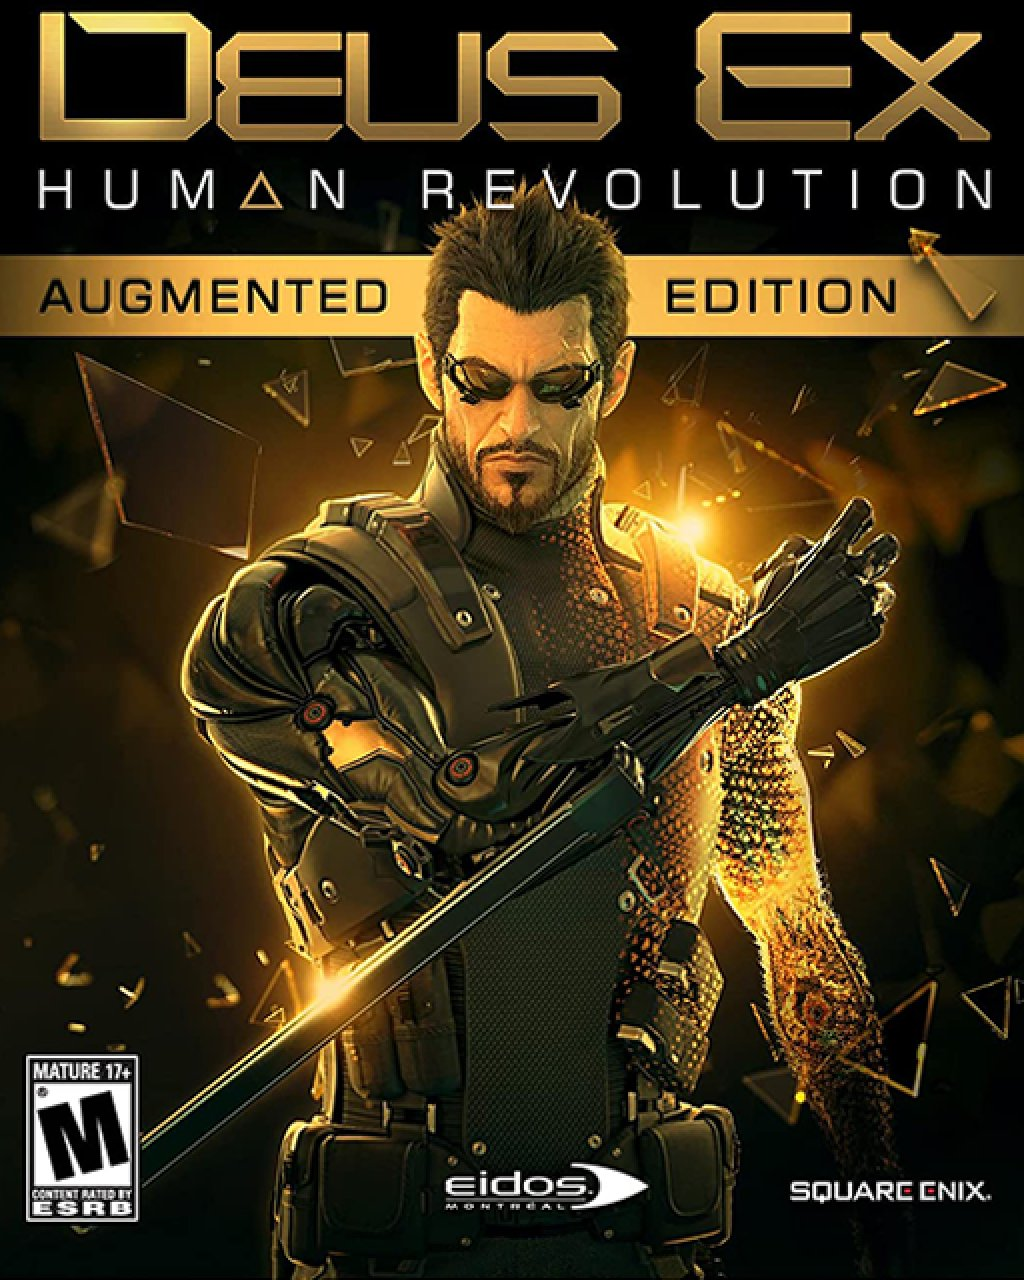 Deus Ex Human Revolution Augmented Edition